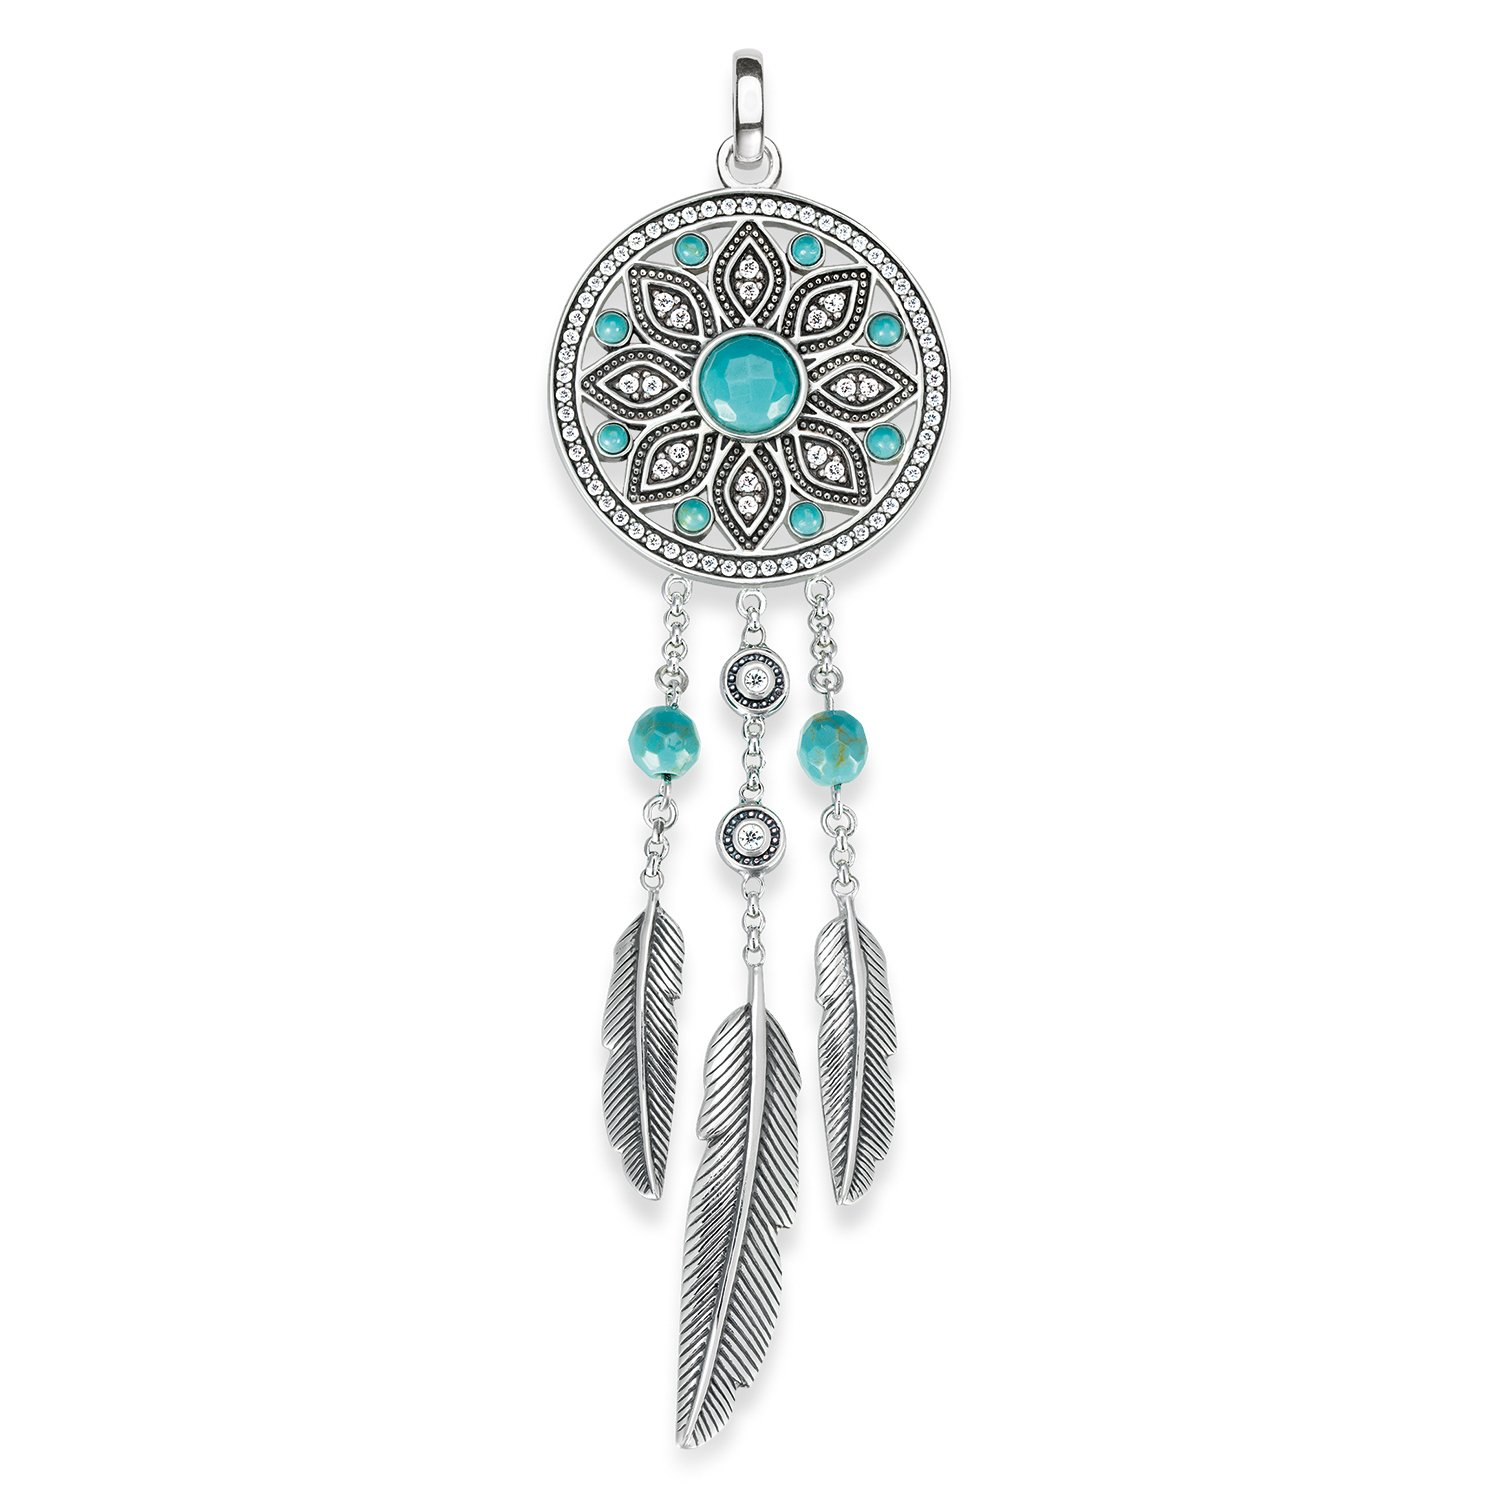 85dd2cb58 Thomas Sabo Women-Pendant Glam & Soul 925 Sterling Silver blackened  Zirconia white simulated turquoise PE711-646-17: Amazon.co.uk: Jewellery